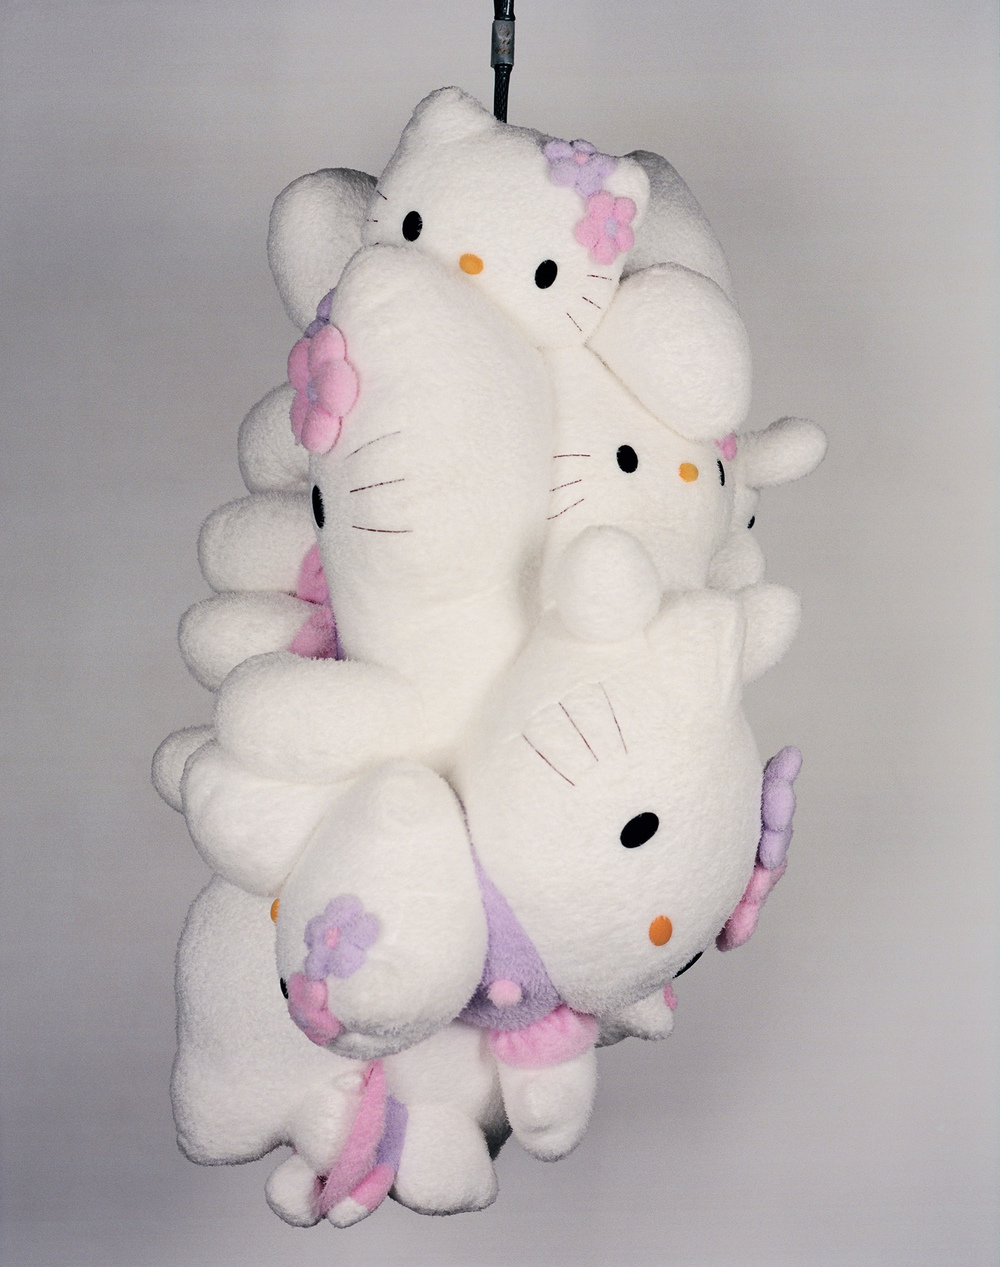 alternate view Polymorphic Kittyclysm, 2004 mixed media and bicycle chain dimensions vary Commissioned by Sanrio for Kitty EX